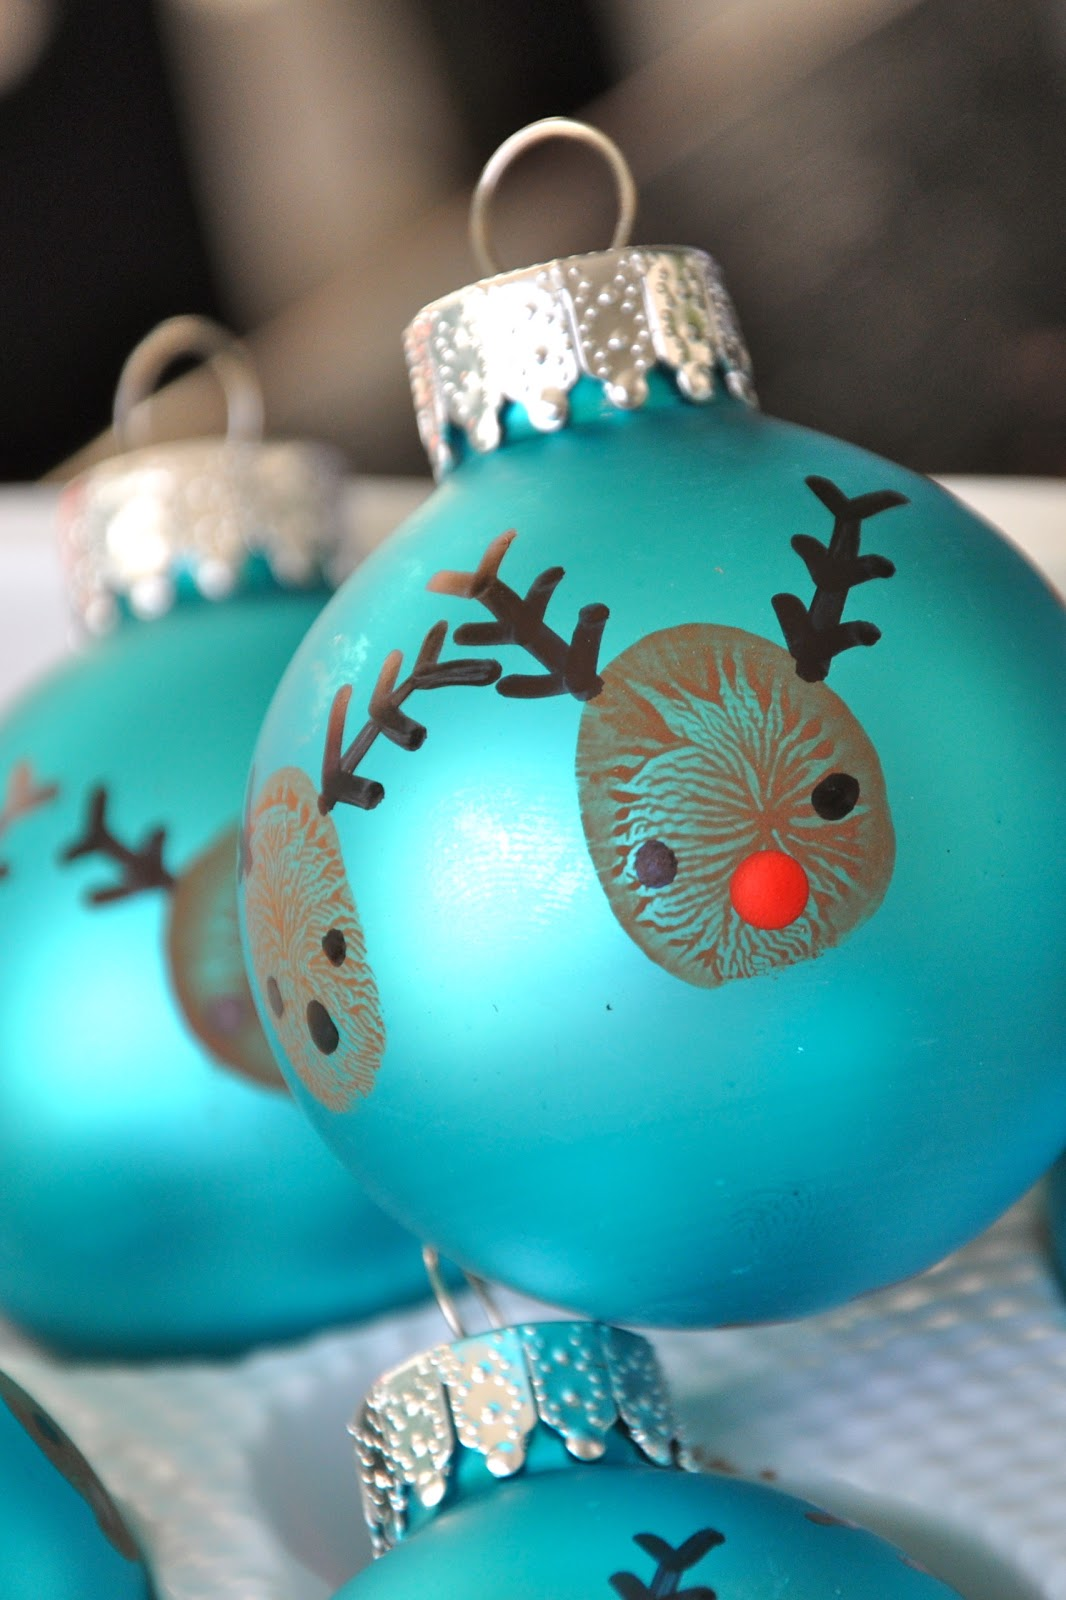 Uncategorized Ornament Ideas little bit funky 20 minute crafter reindeer thumbprint ornaments ornaments